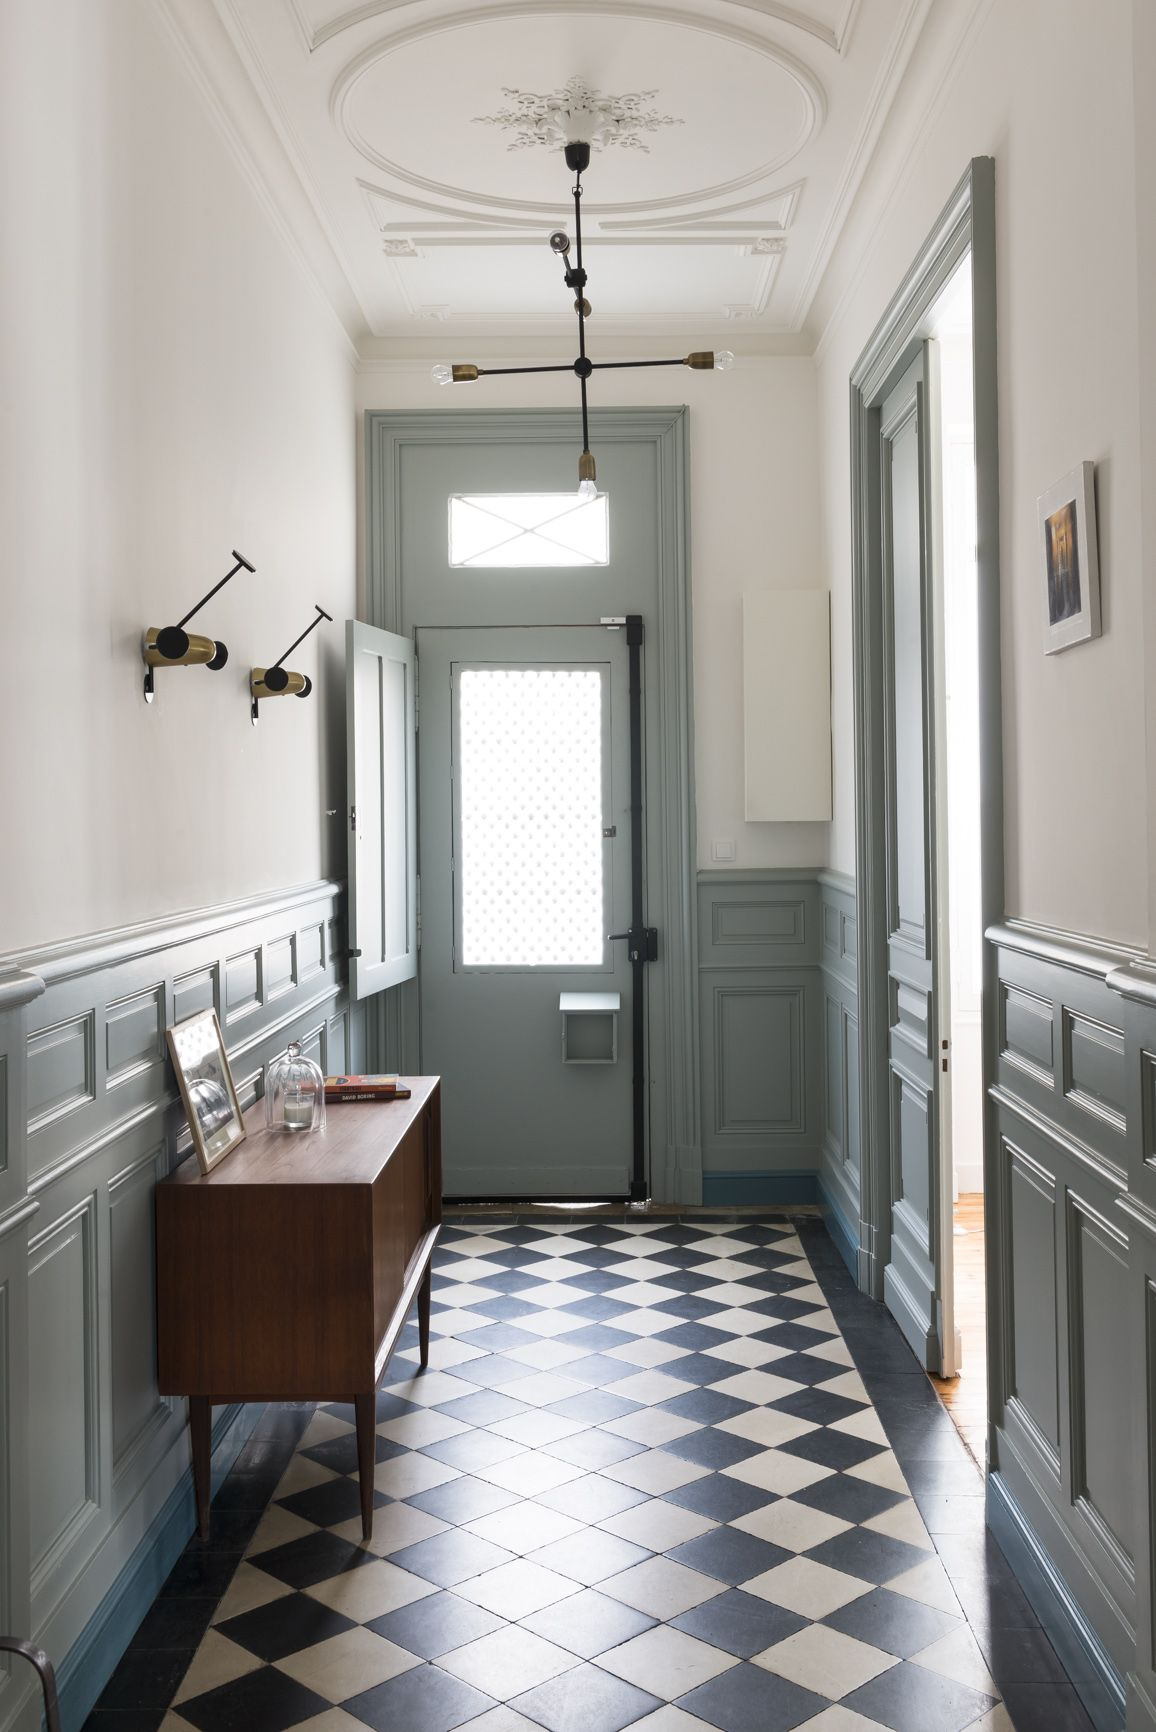 Best 25 maison bourgeoise ideas on pinterest boiseries for Moulure fenetre interieur